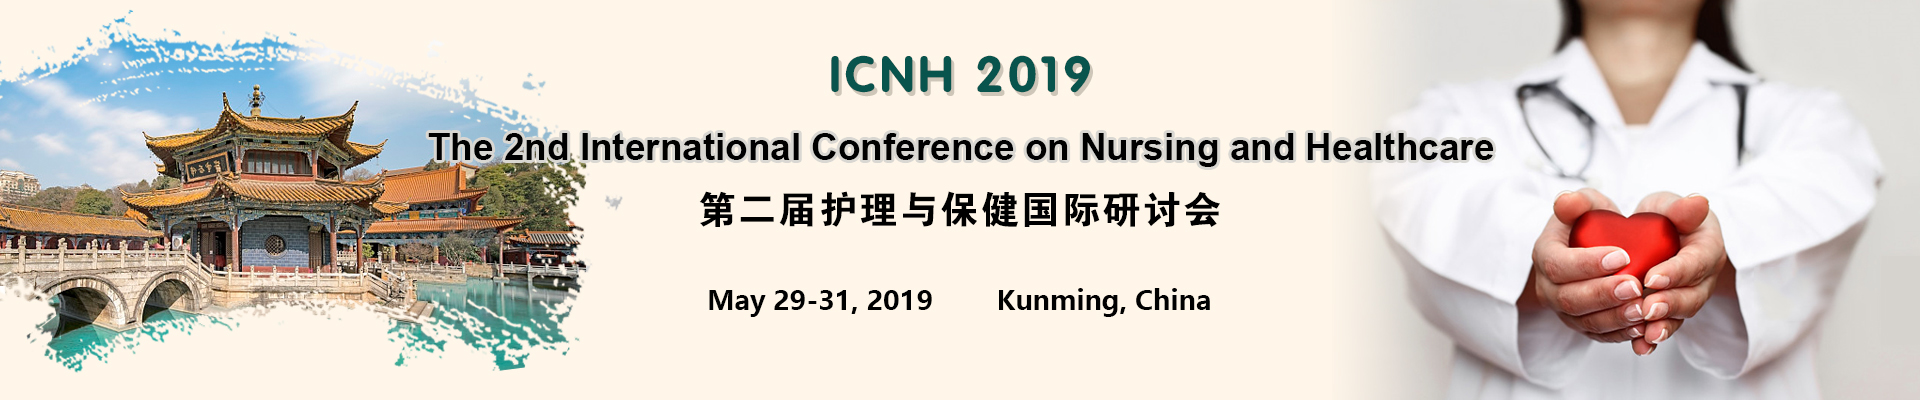 The 2nd International Conference on Nursing and Healthcare